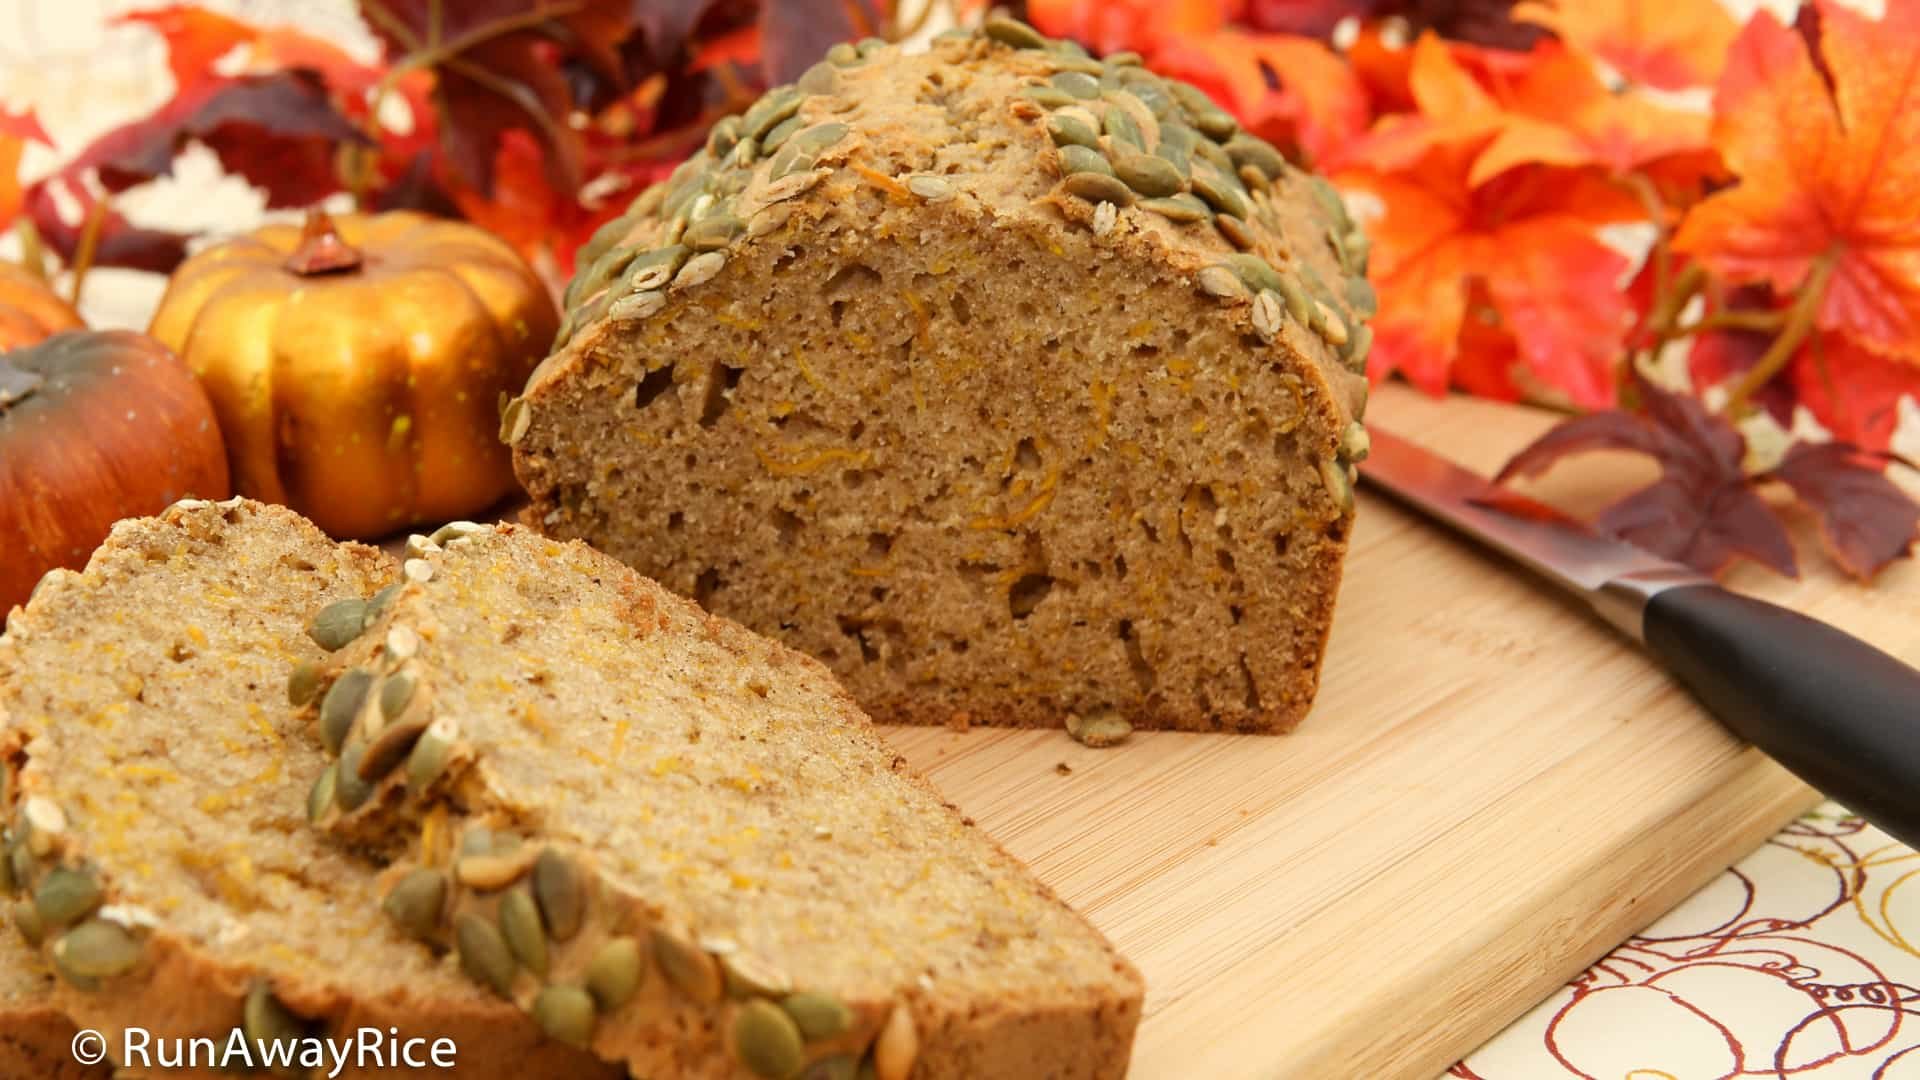 Pumpkin Spice Bread - enjoy the flavors and aroma of autumn in this delicious bread | recipe from runawayrice.com